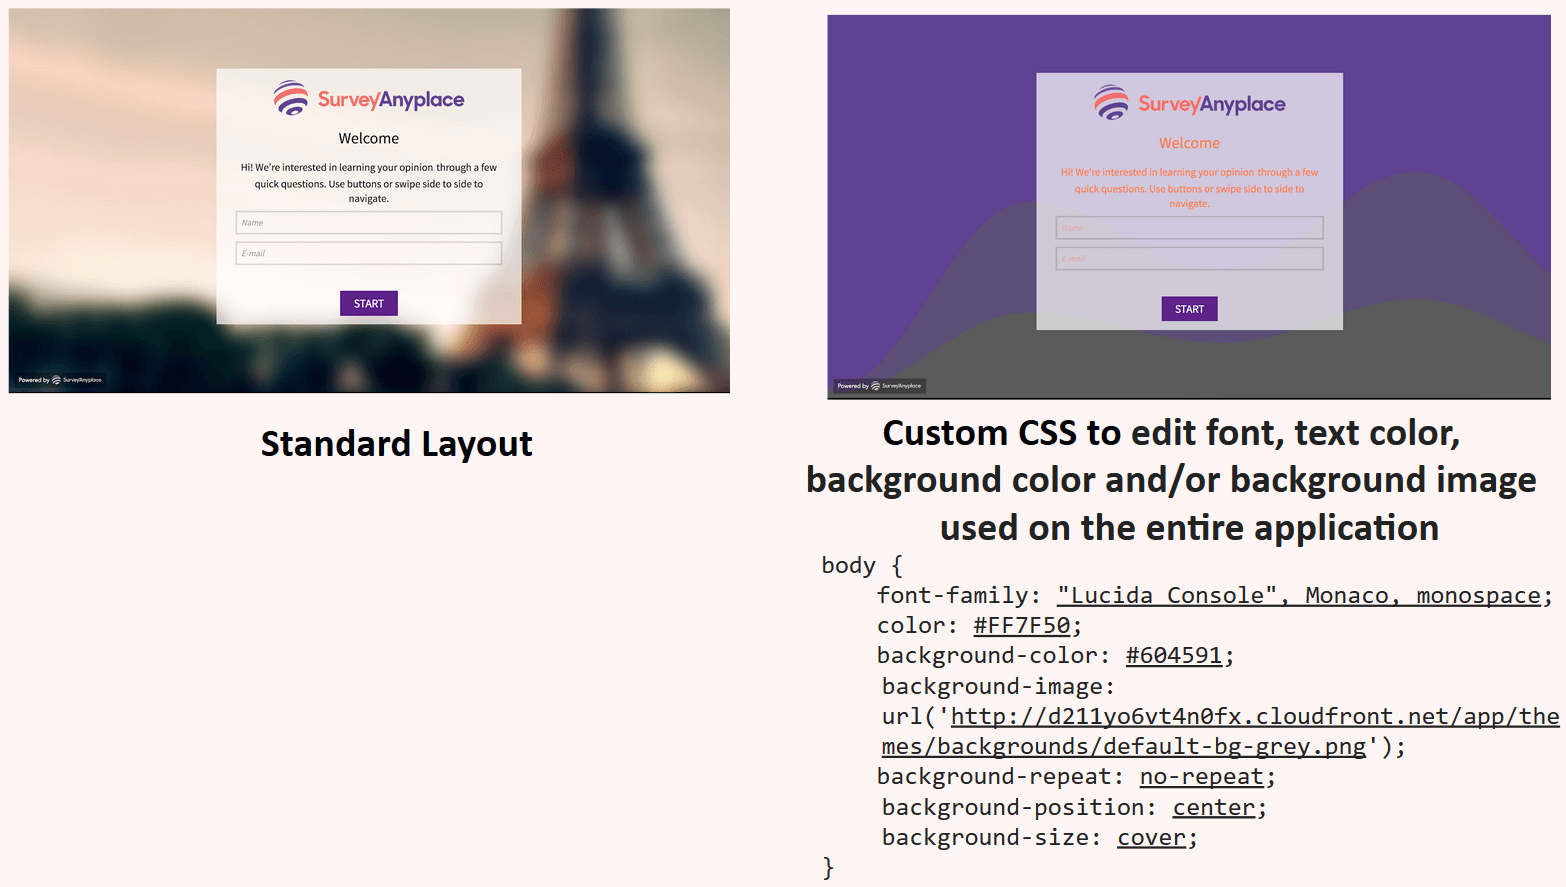 Custom CSS to edit font, color, background, image